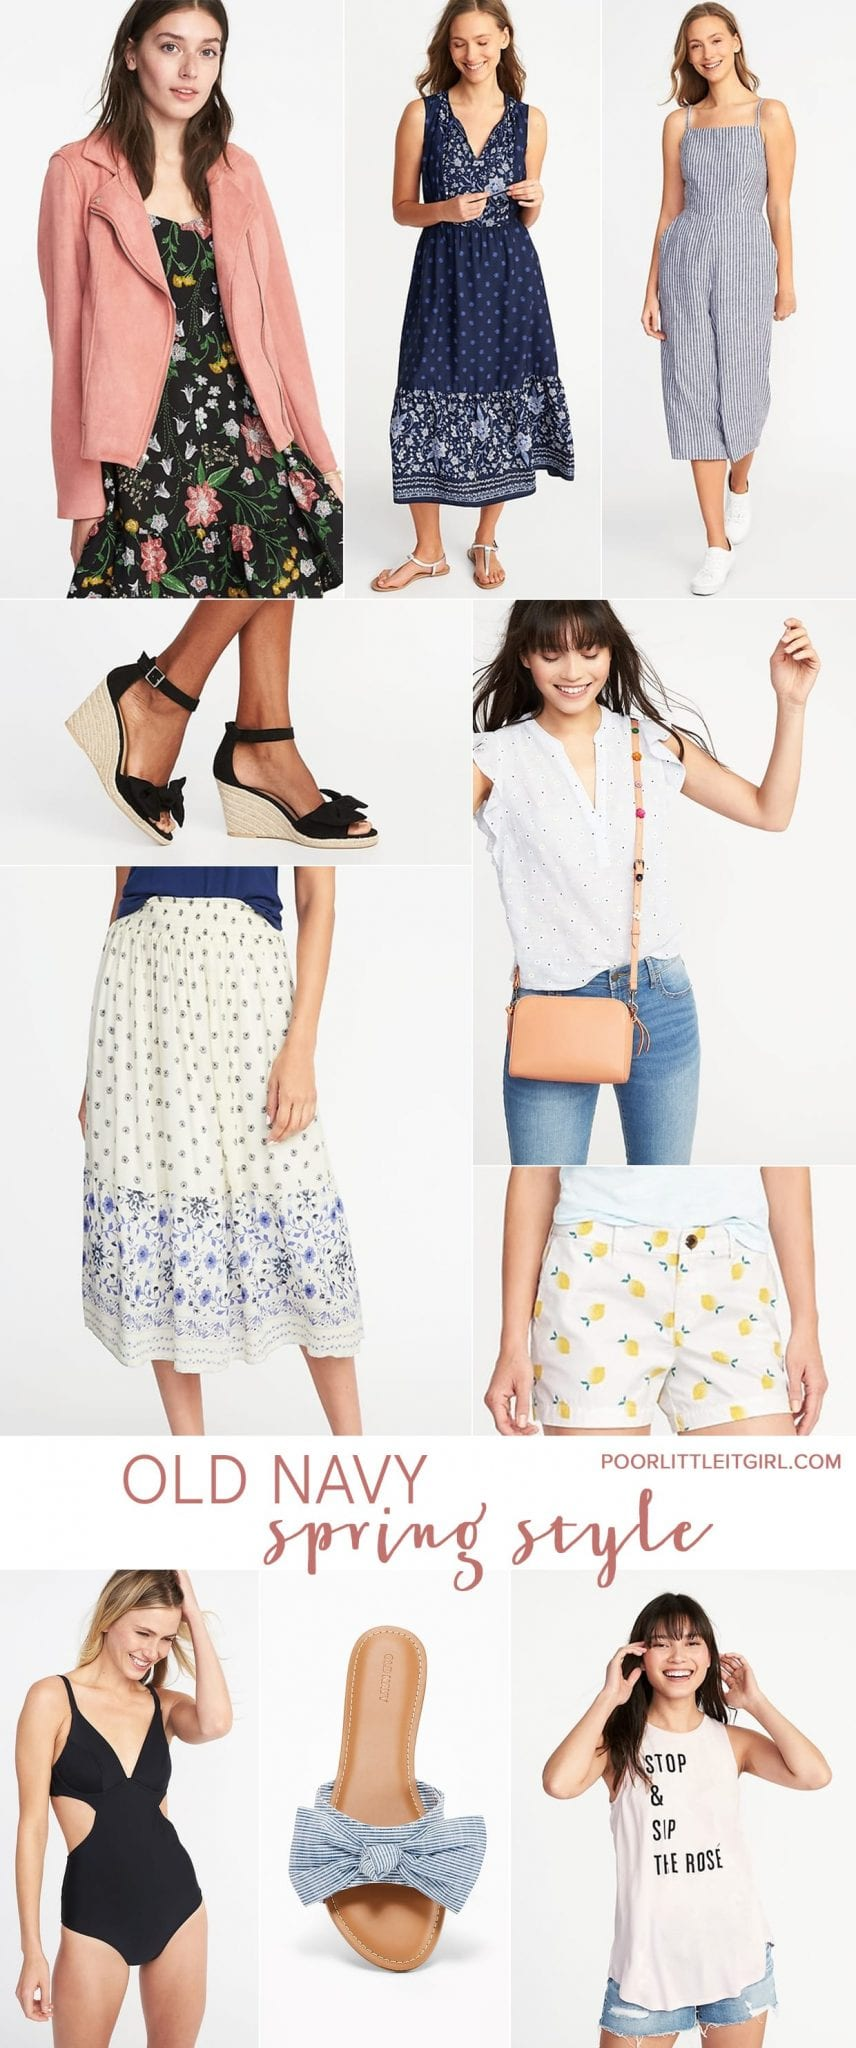 Old Navy Spring Fashion And Accessories - Poor Little It Girl